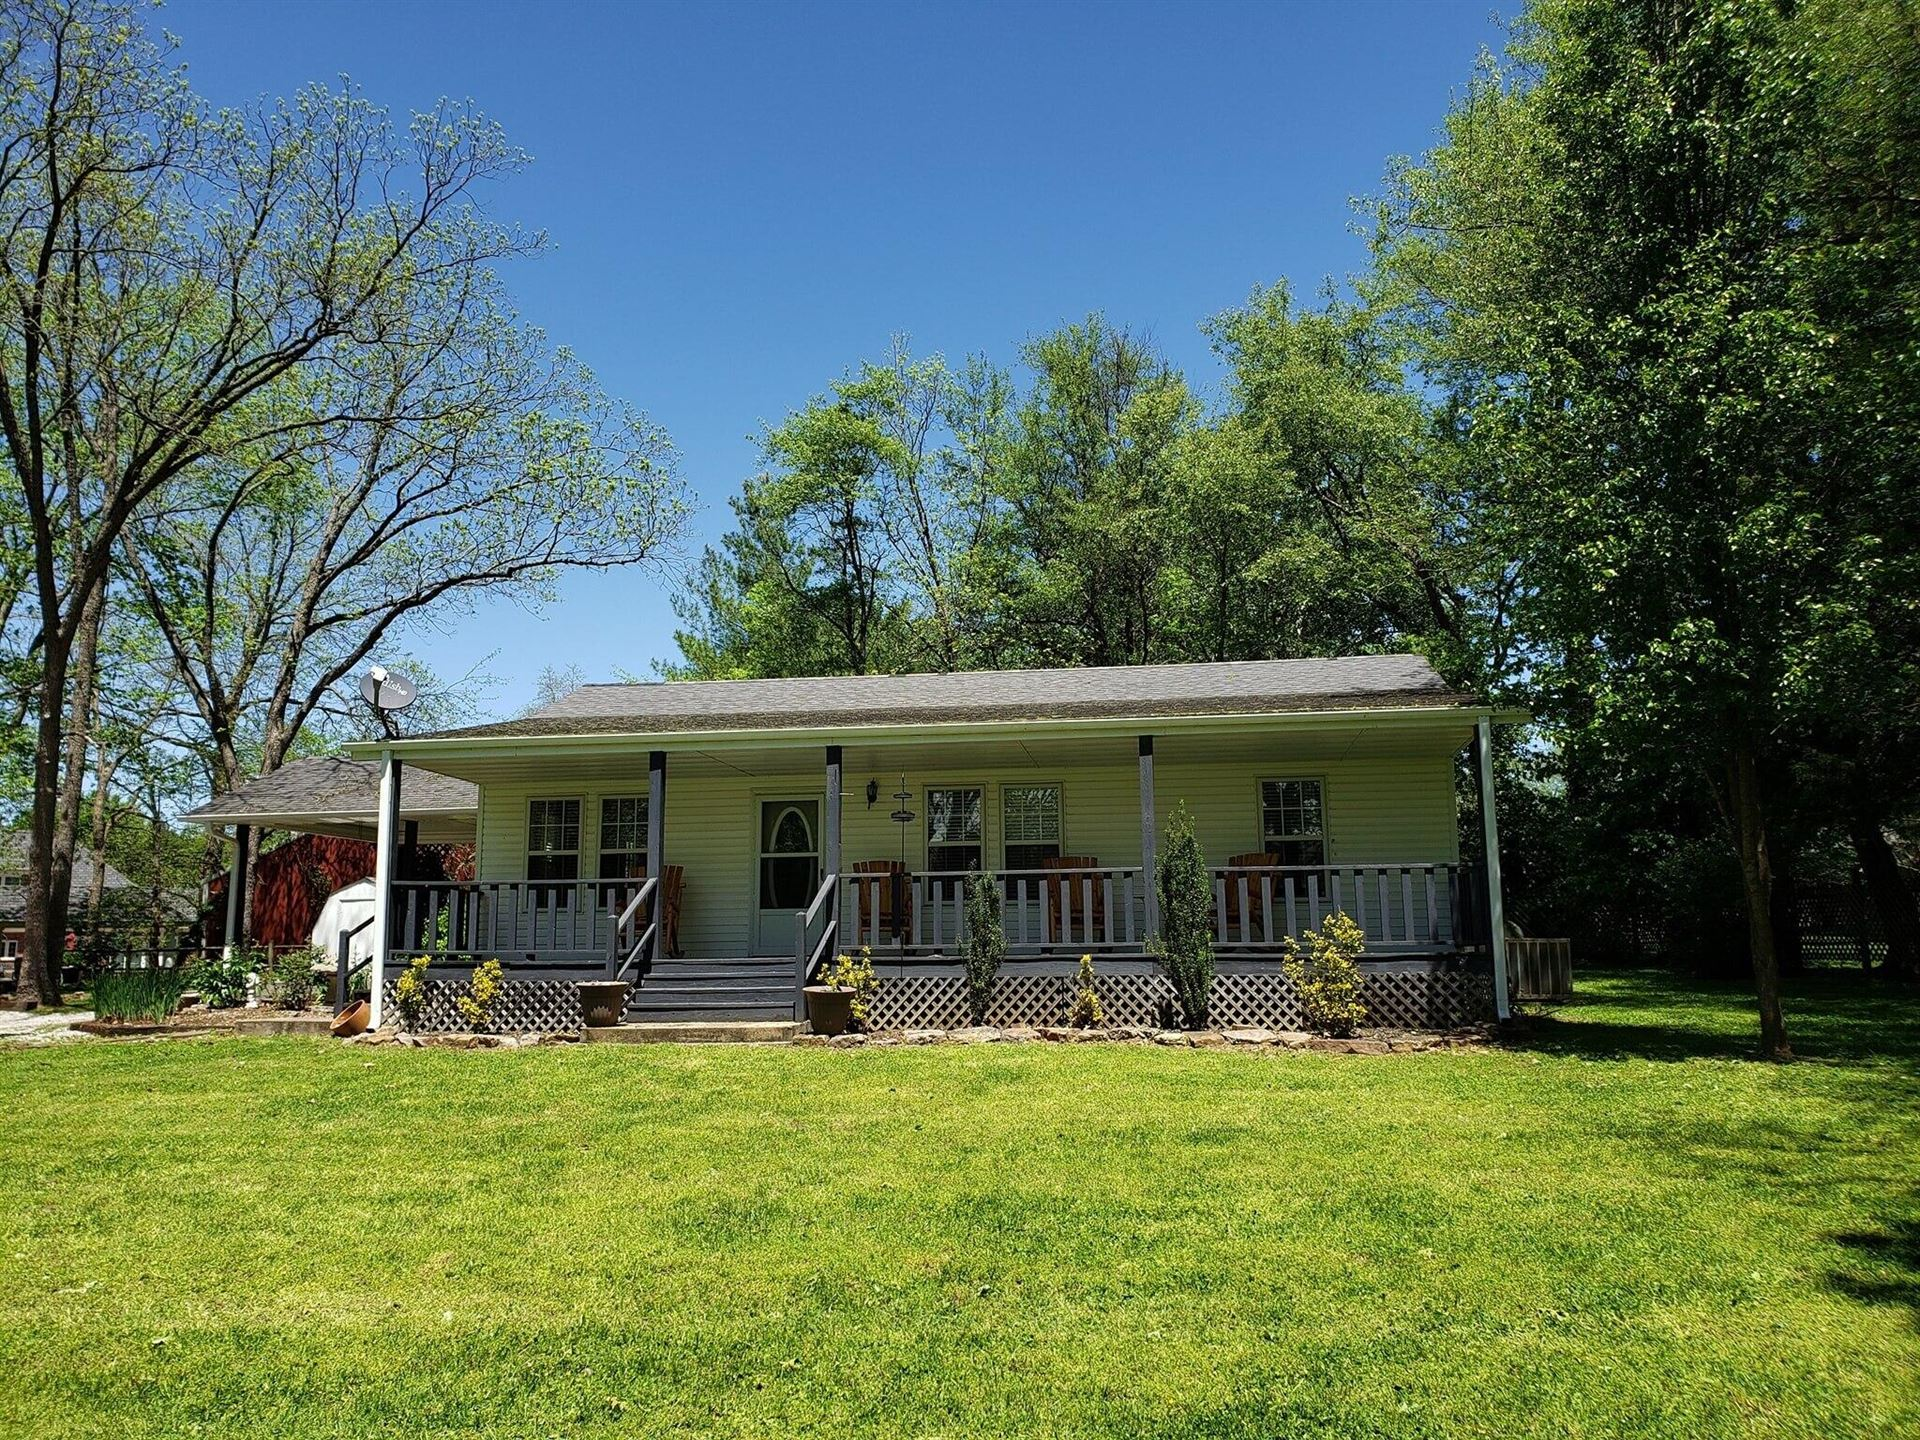 Photo of 122 West 1st Street, Mountain View, MO 65548 (MLS # 60199887)